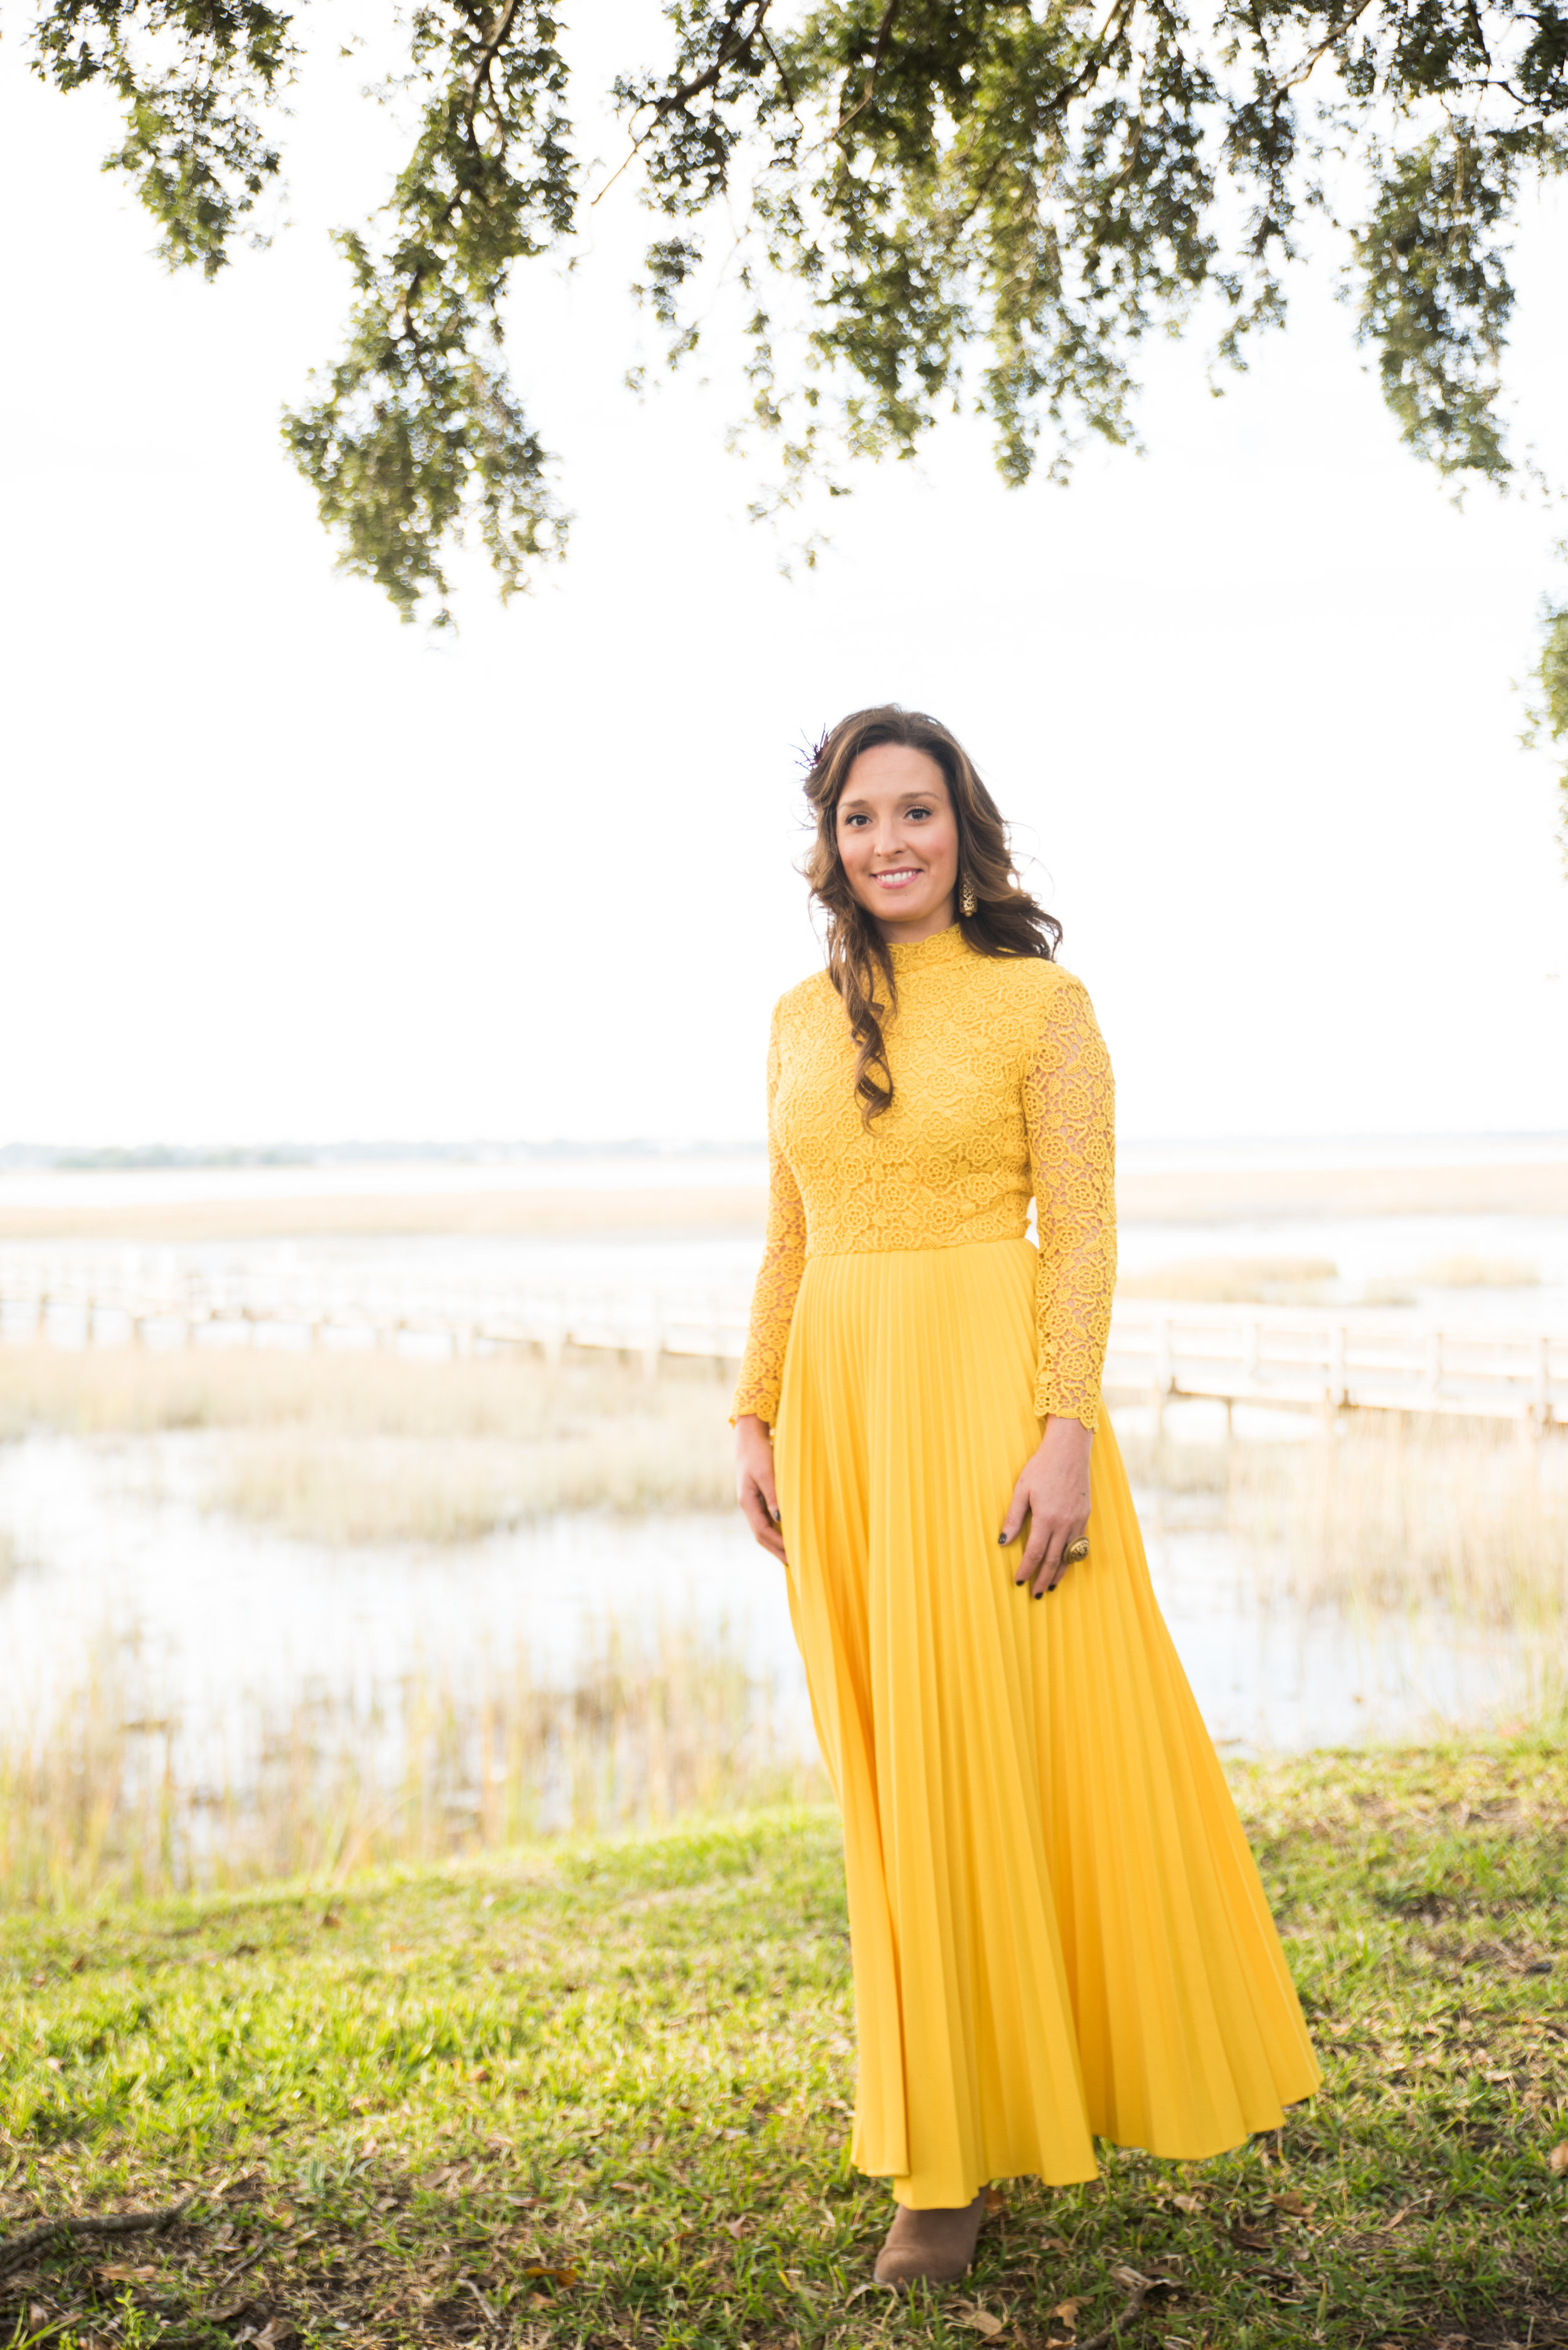 Southern Hair - Beach Waves  Hair & Makeup - Danna Breaux with Best Day Ever Bridal  Dress: Classically Curated (Not listed for sale yet)  Photography - Katie Charlotte Photography